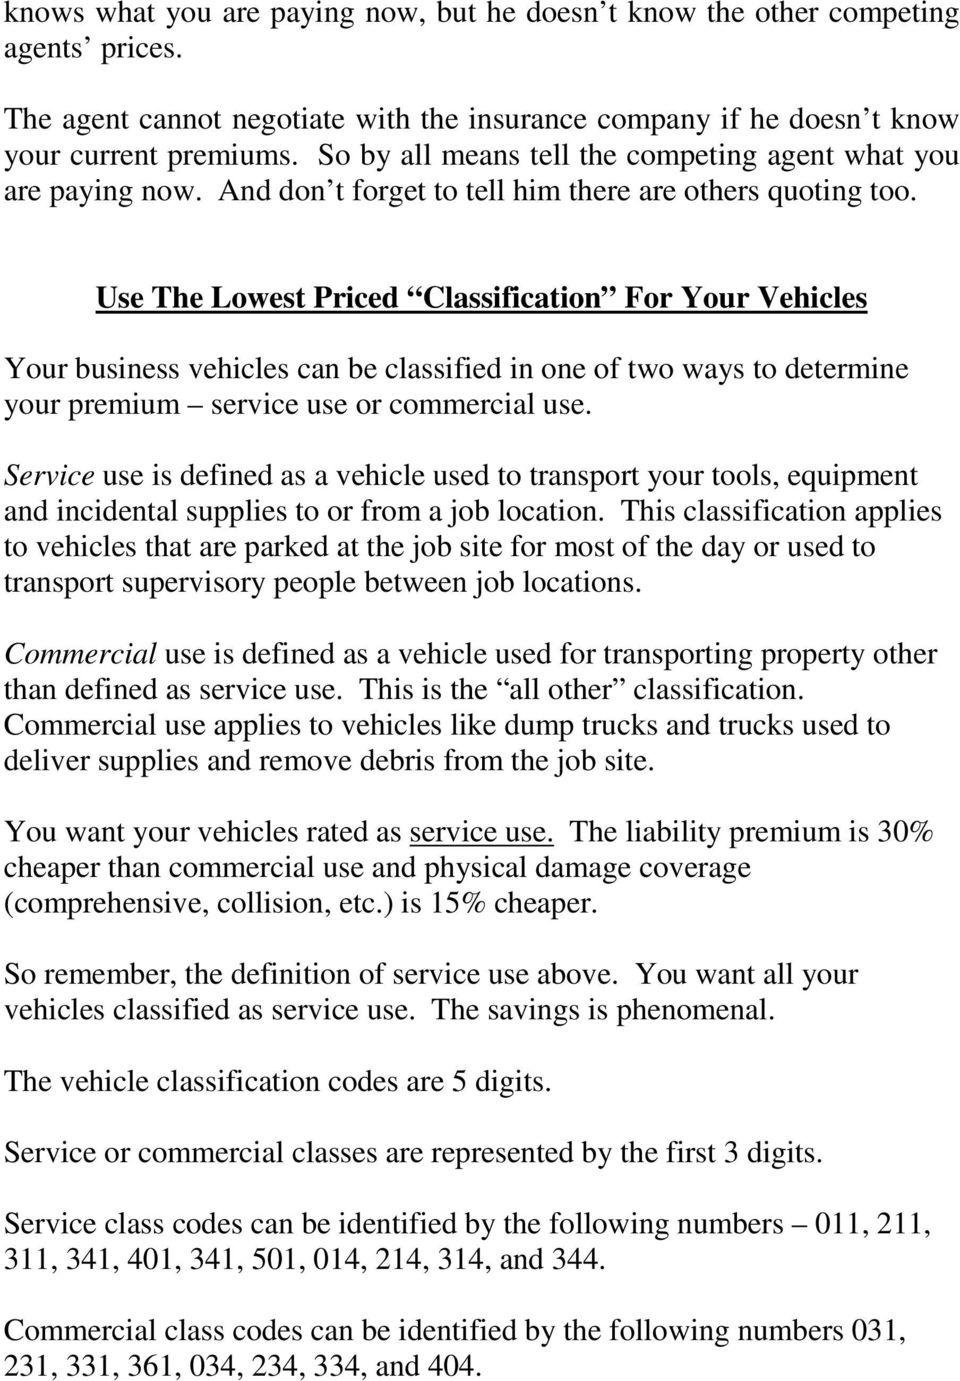 Use The Lowest Priced Classification For Your Vehicles Your business vehicles can be classified in one of two ways to determine your premium service use or commercial use.